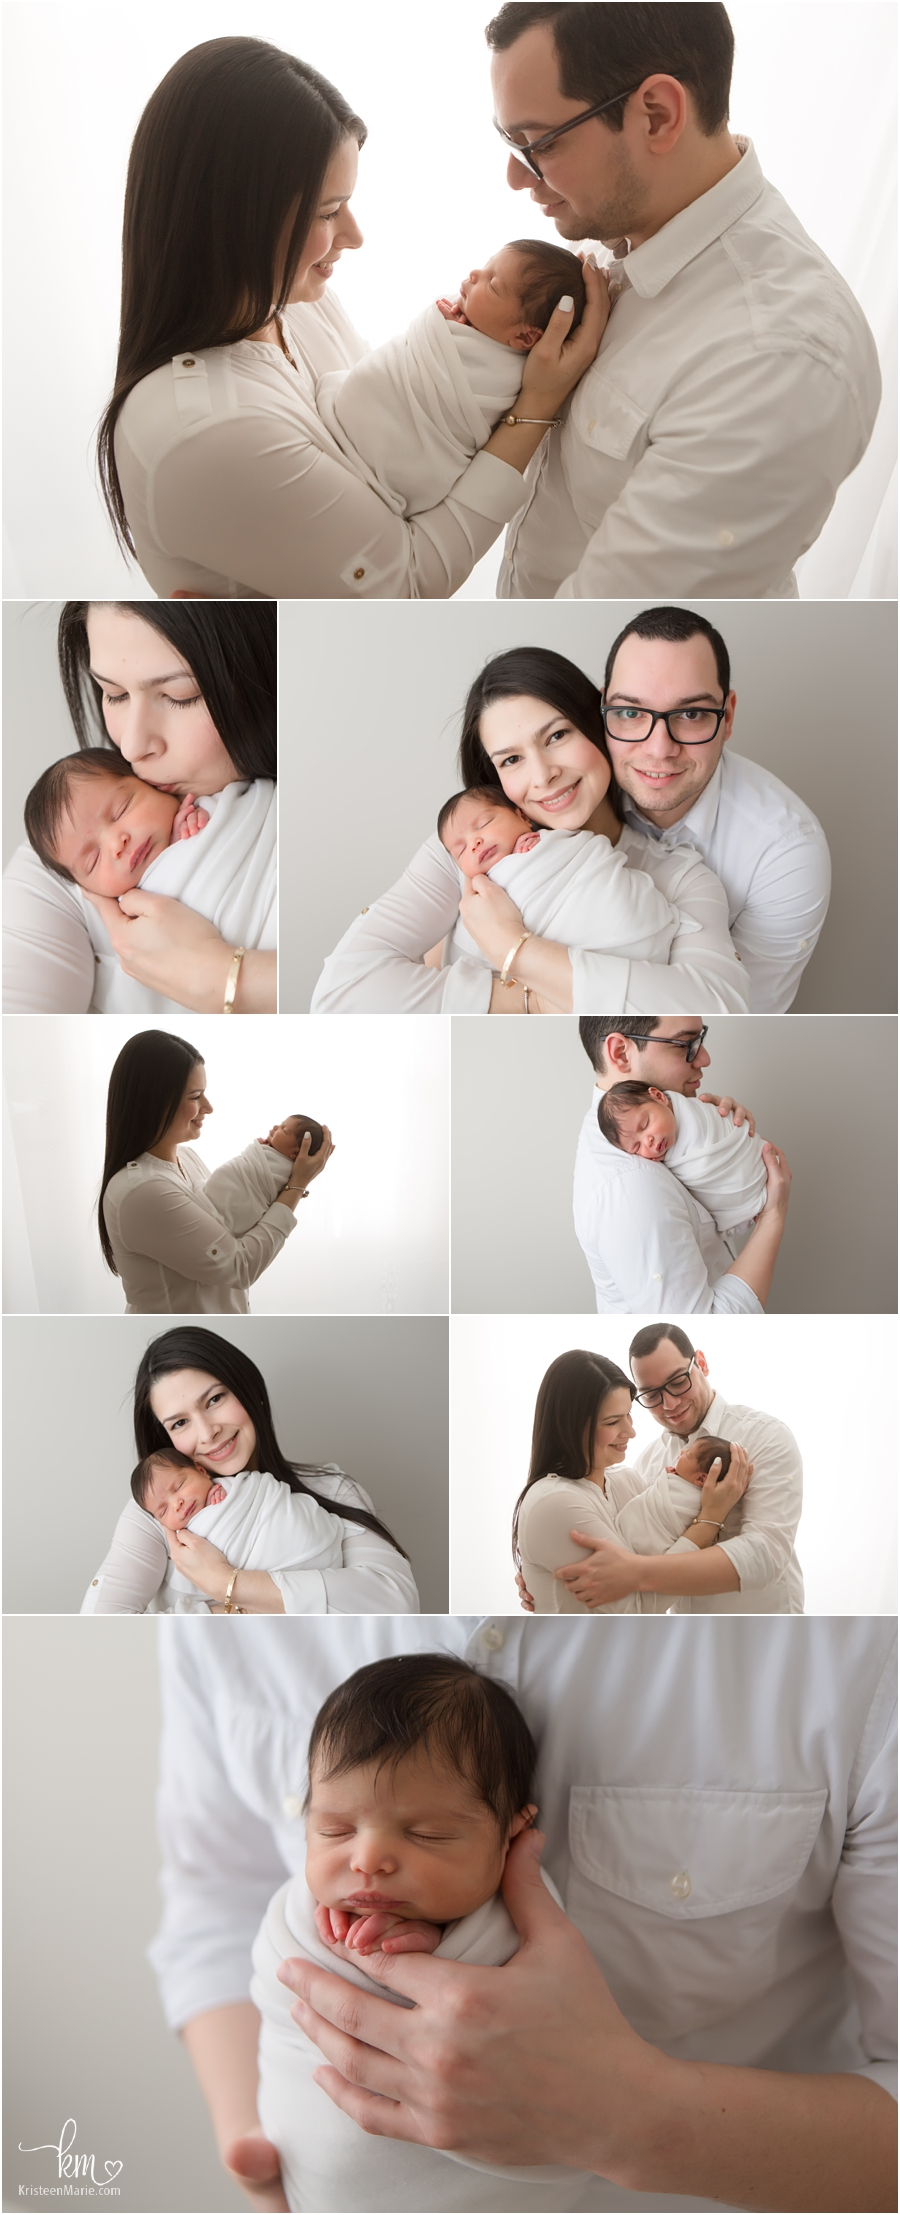 parents with newborn baby from Zionsville, IN - newborn family pictures and poses - so sweet on neutral backdrop